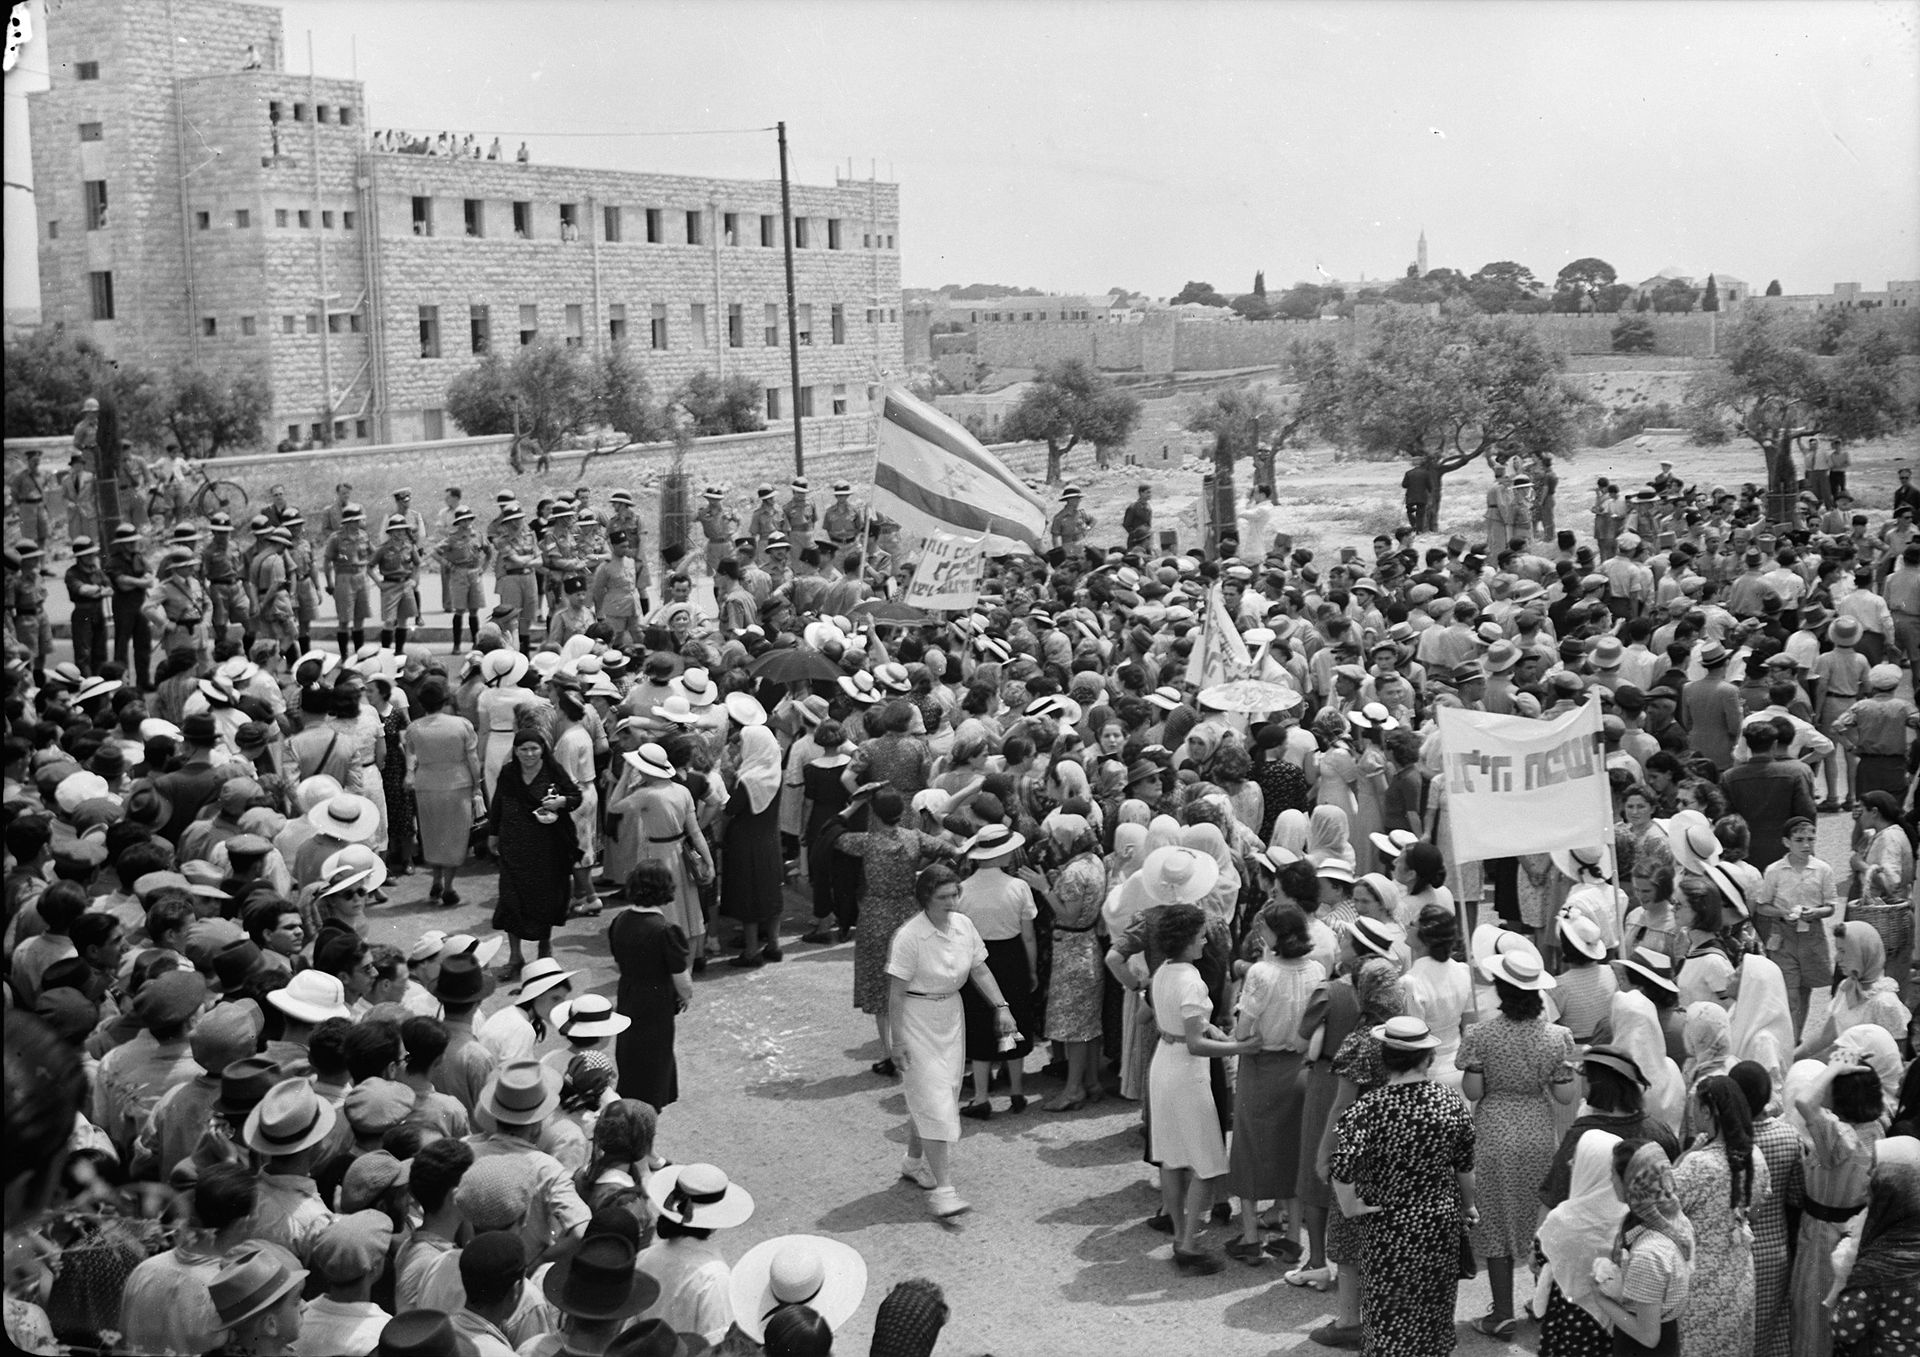 Jewish women protest against the White Paper in Jerusalem. Photo source: United States Library of Congress.